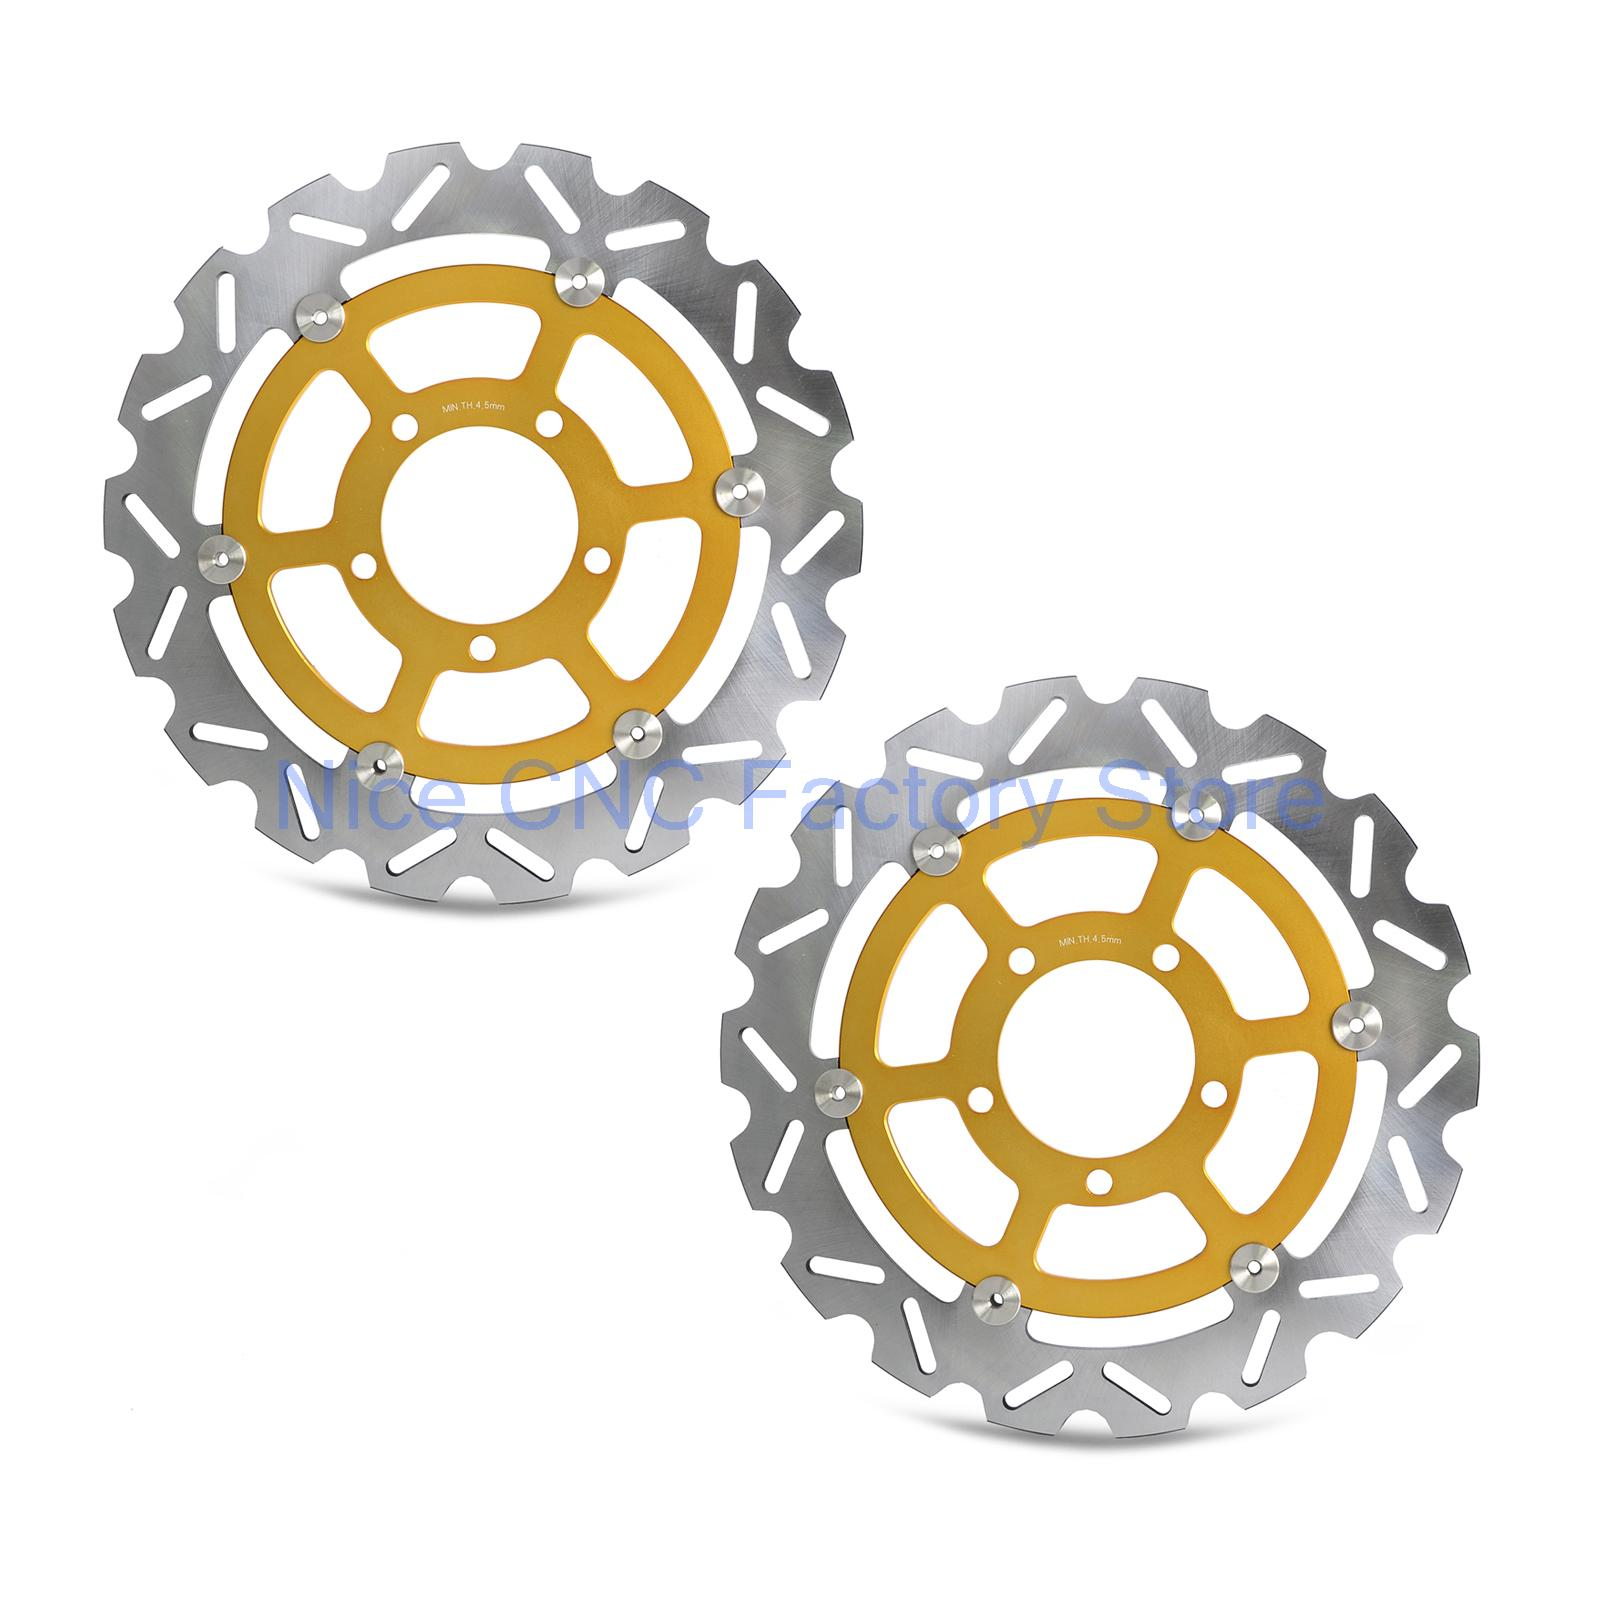 2 Pcs Motorcycle Floating Front Brake Disc Rotor For Kawasaki Z800 2013-2016 Versys 1000 2015 2016 Z1000 ZR1000 2014 -2016 320mm floating motorcycle brake disc disks rotor for ktm duke 125 200 390 duke 2013 2016 motorbike front brake disc disks